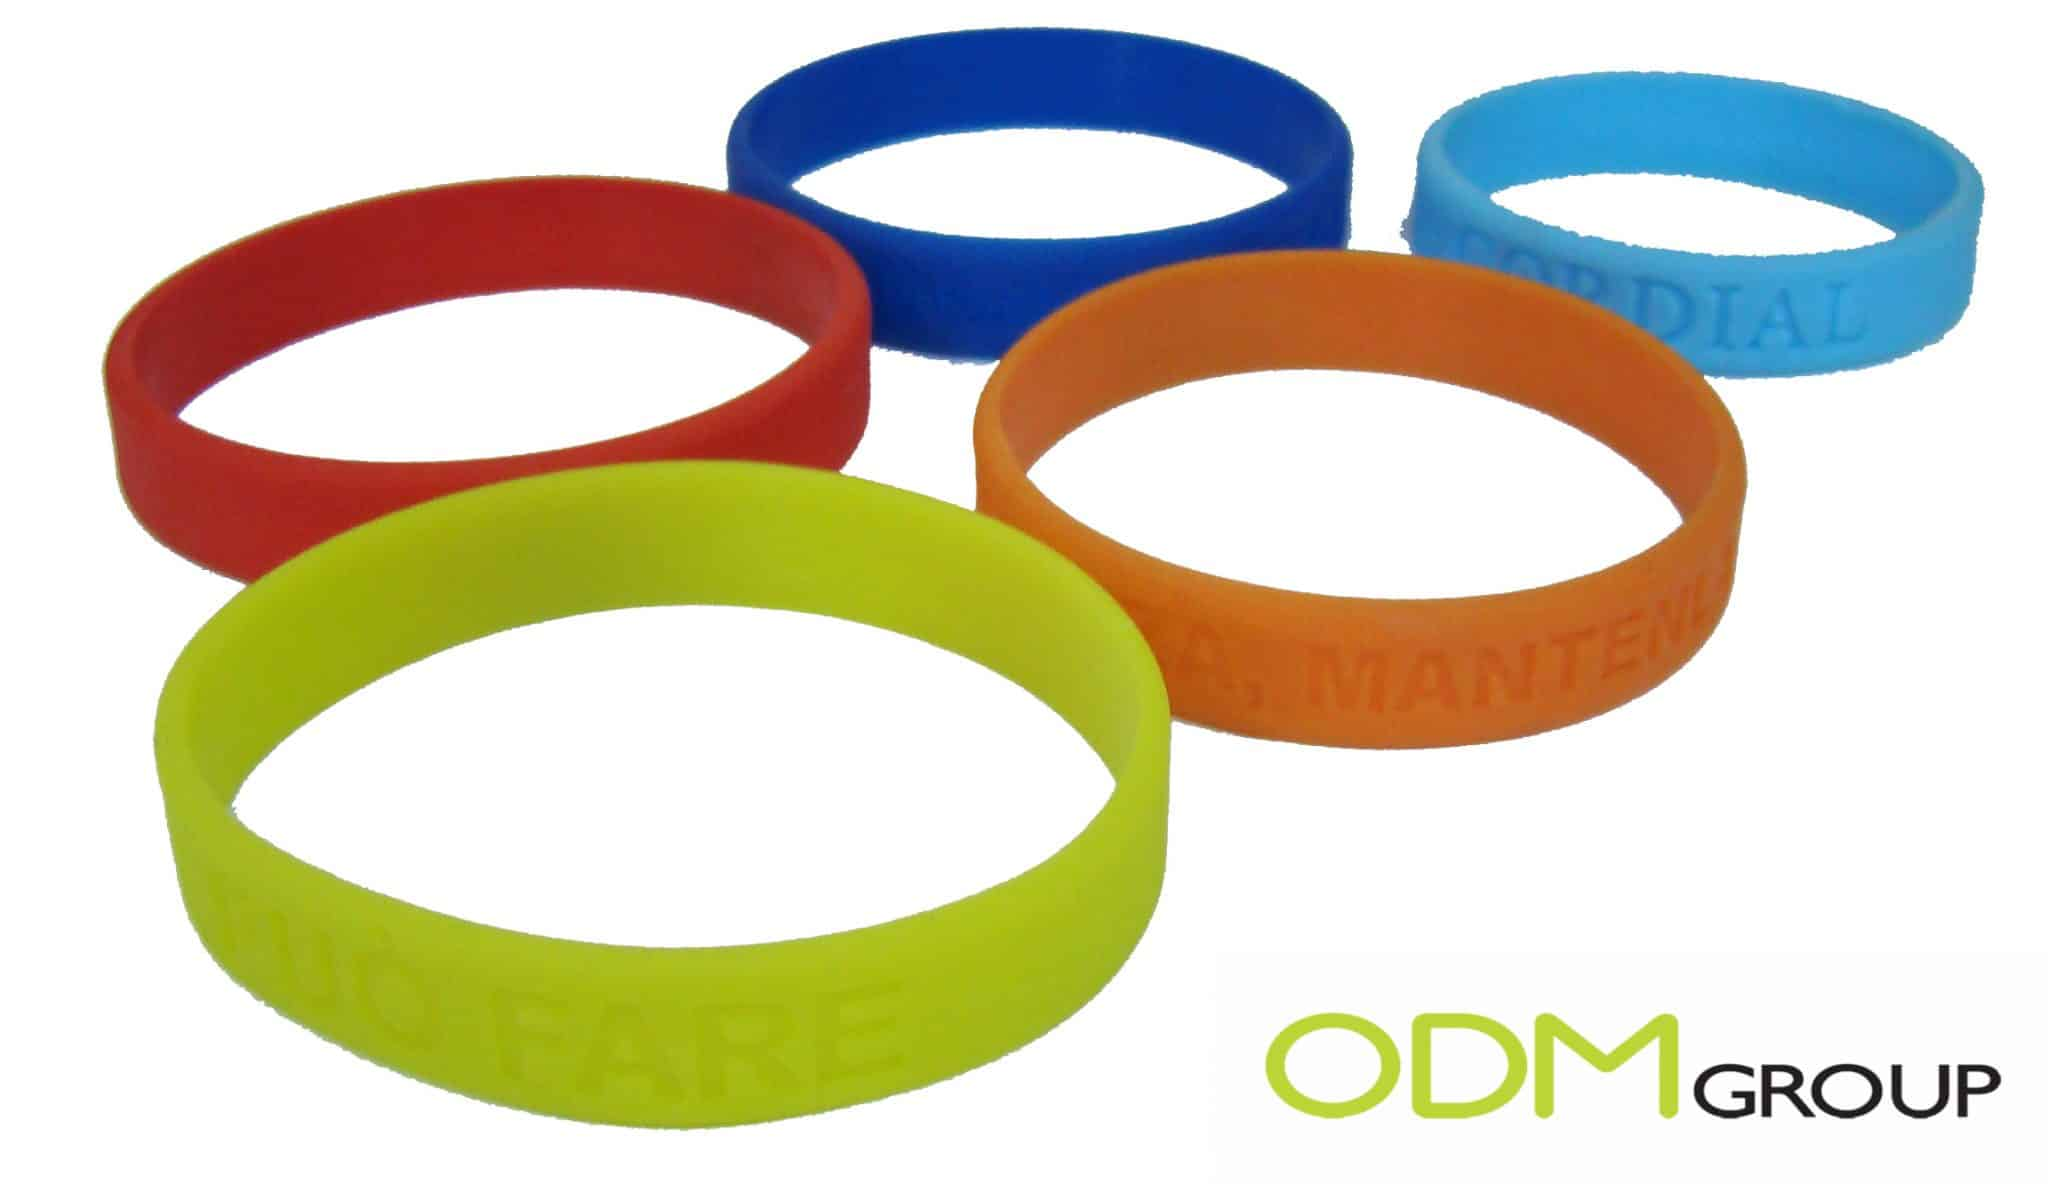 Promo Gift Idea - Colorful Silicone Bracelet